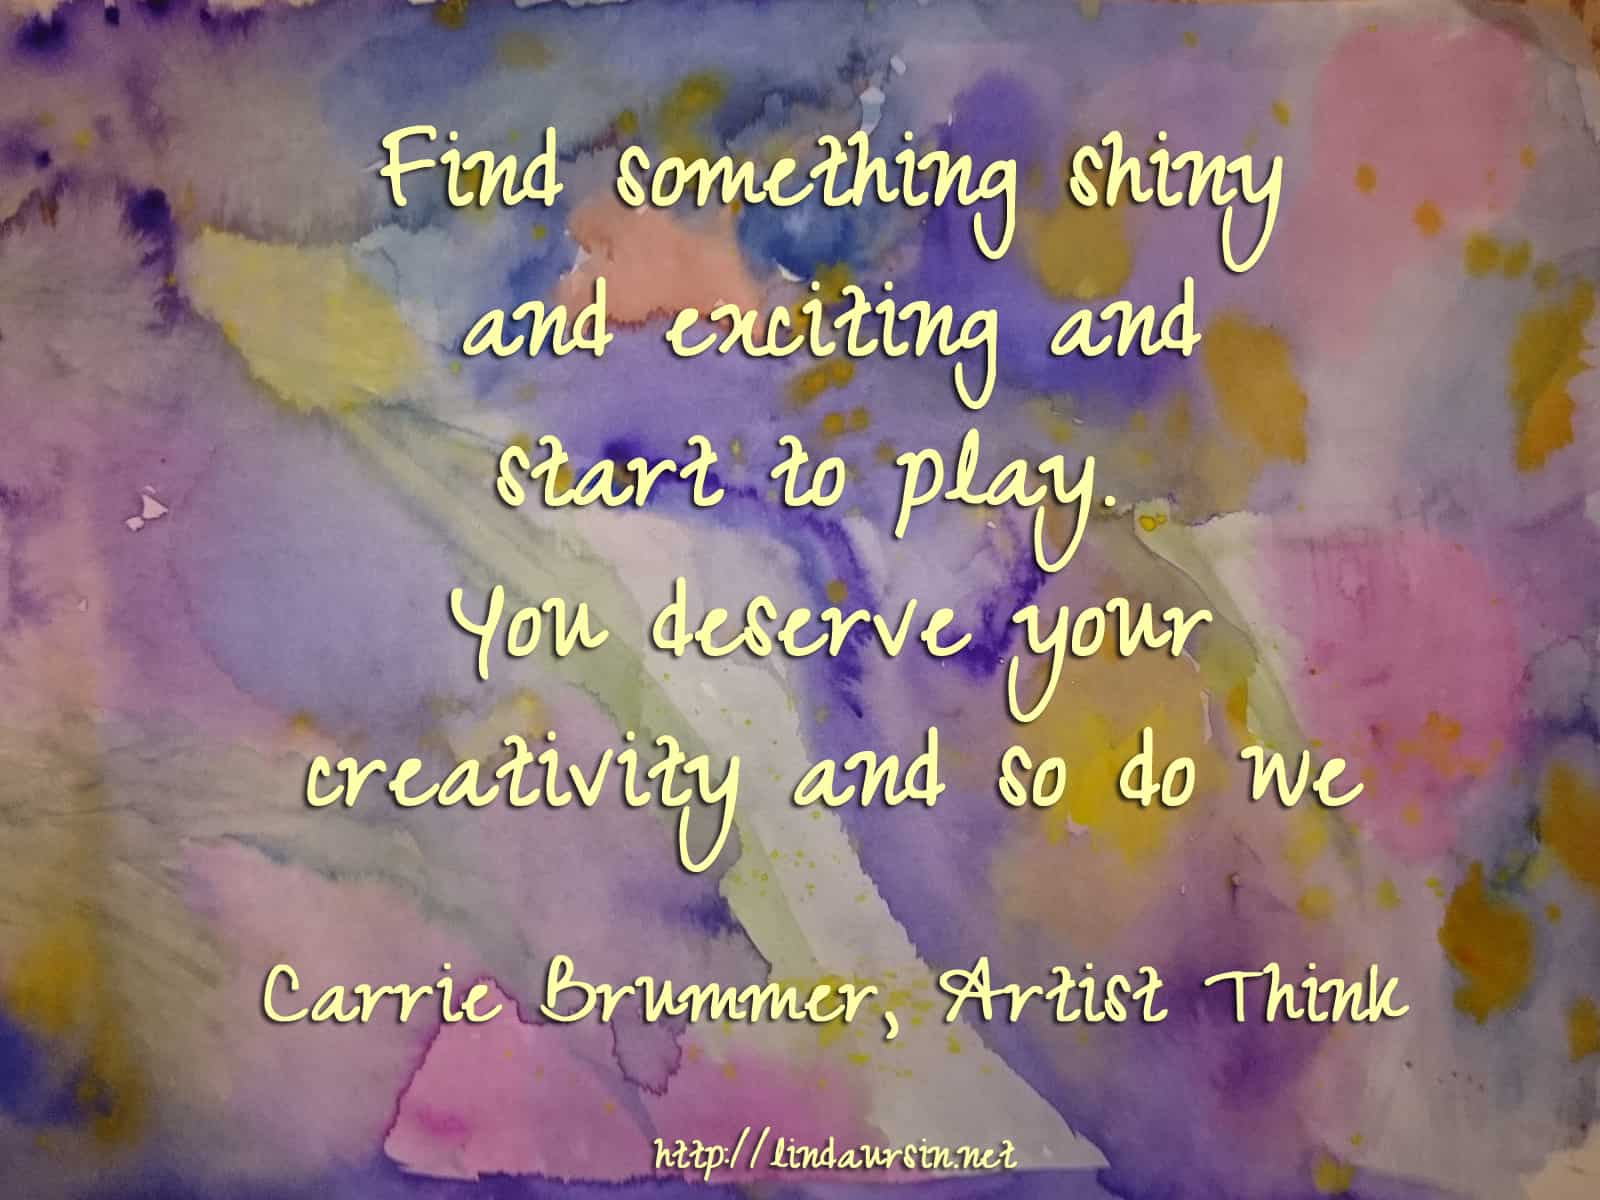 Find something shiny and exciting and start to play. You deserve your creativity and so do we - Carrie Brummer